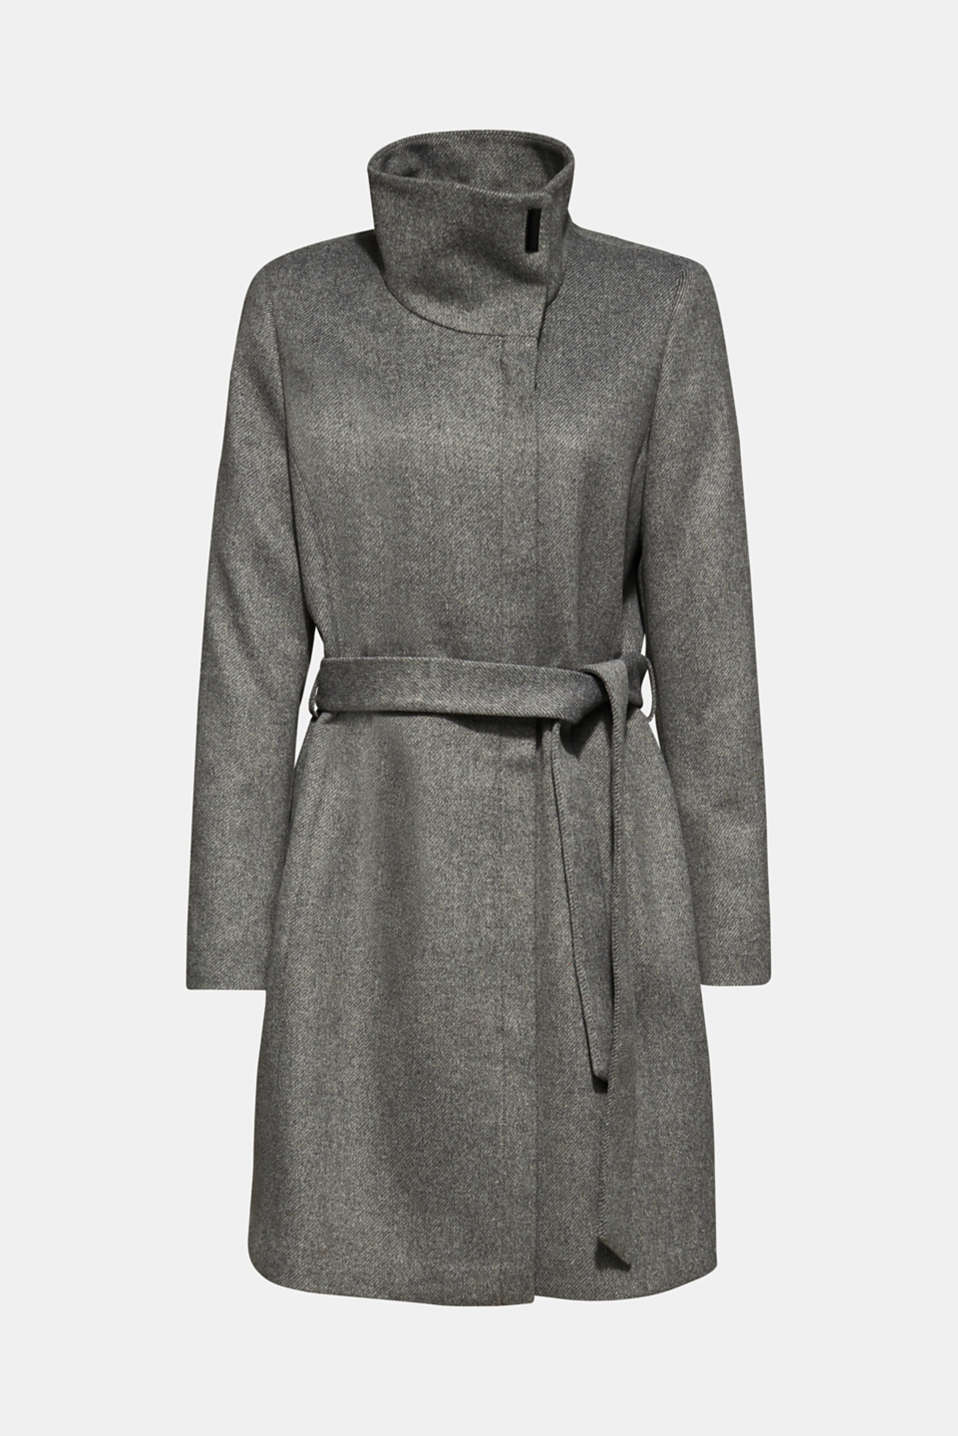 With wool: Coat with tie-around belt, GUNMETAL 5, detail image number 8